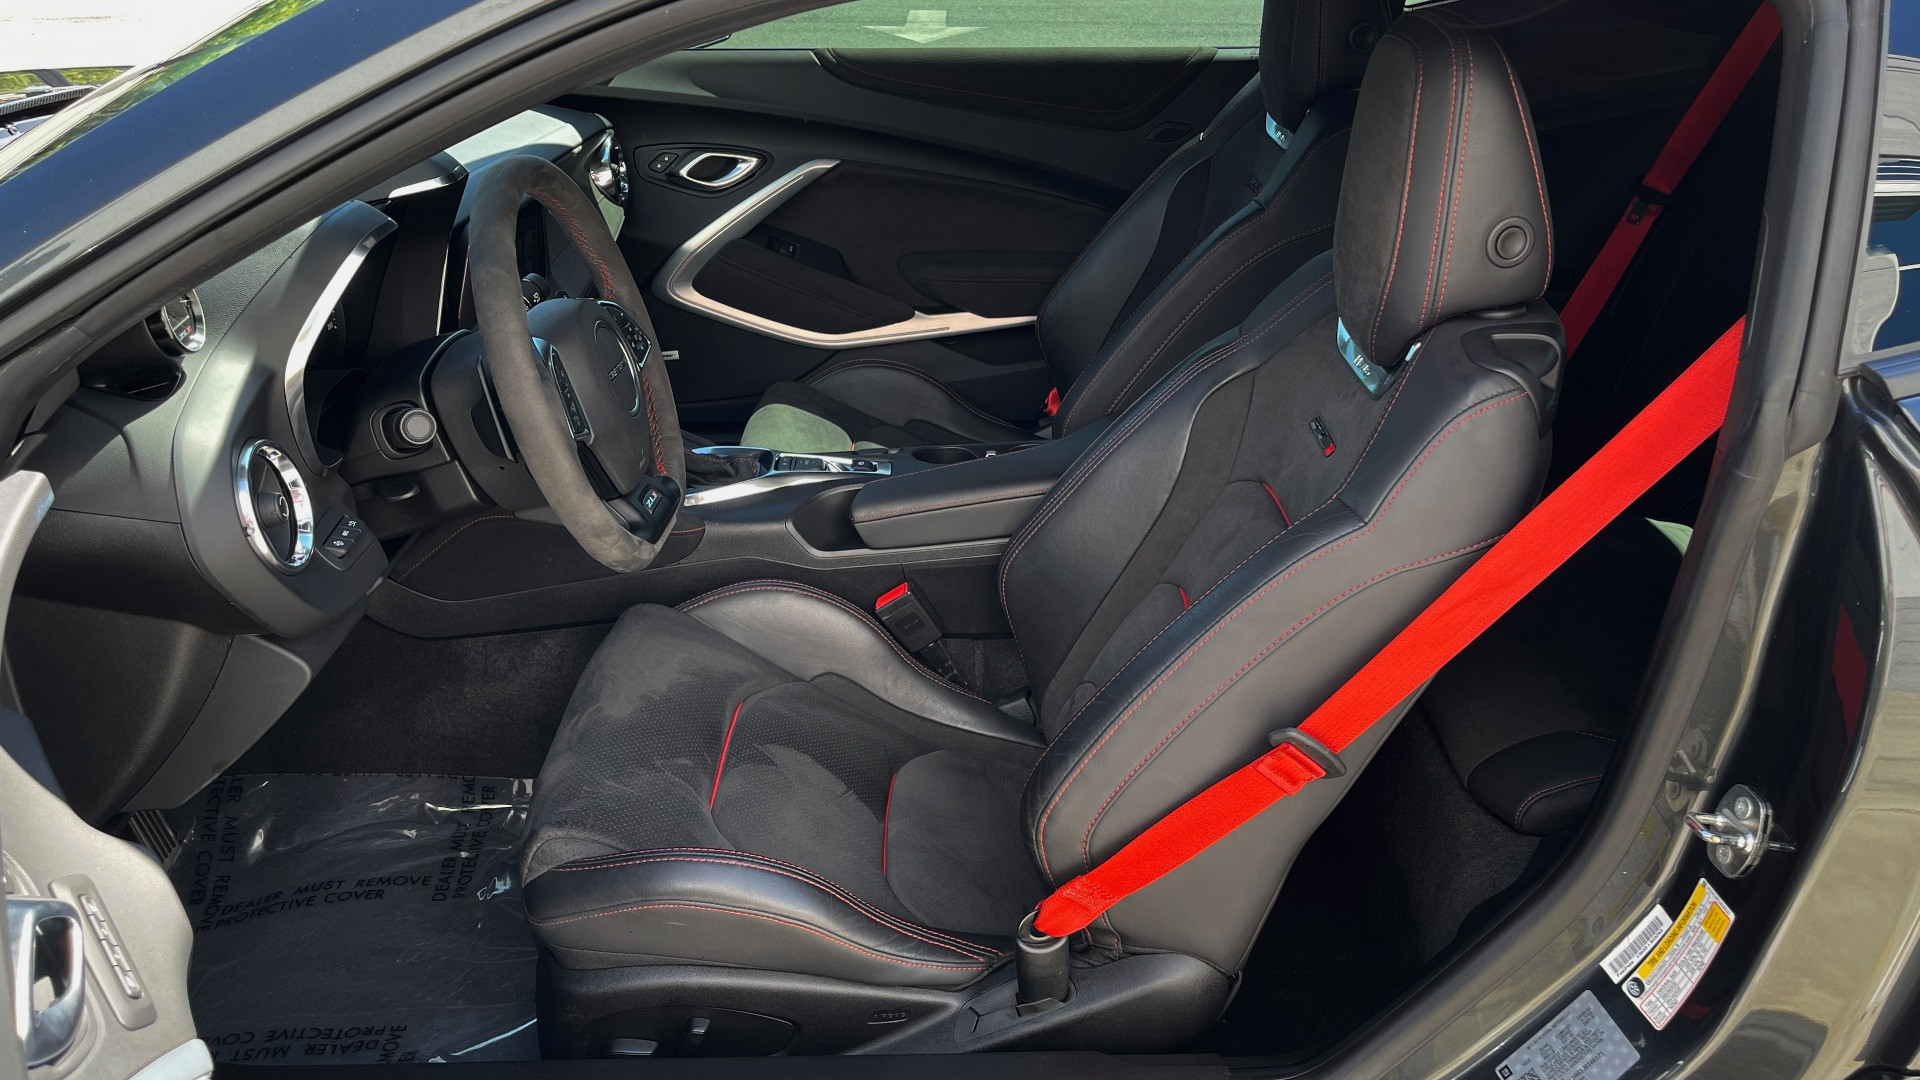 Used 2018 Chevrolet CAMARO ZL1 SUPERCHARGED COUPE 850HP / 10-SPD AUTO / NAV / BOSE / REARVIEW for sale $59,995 at Formula Imports in Charlotte NC 28227 31